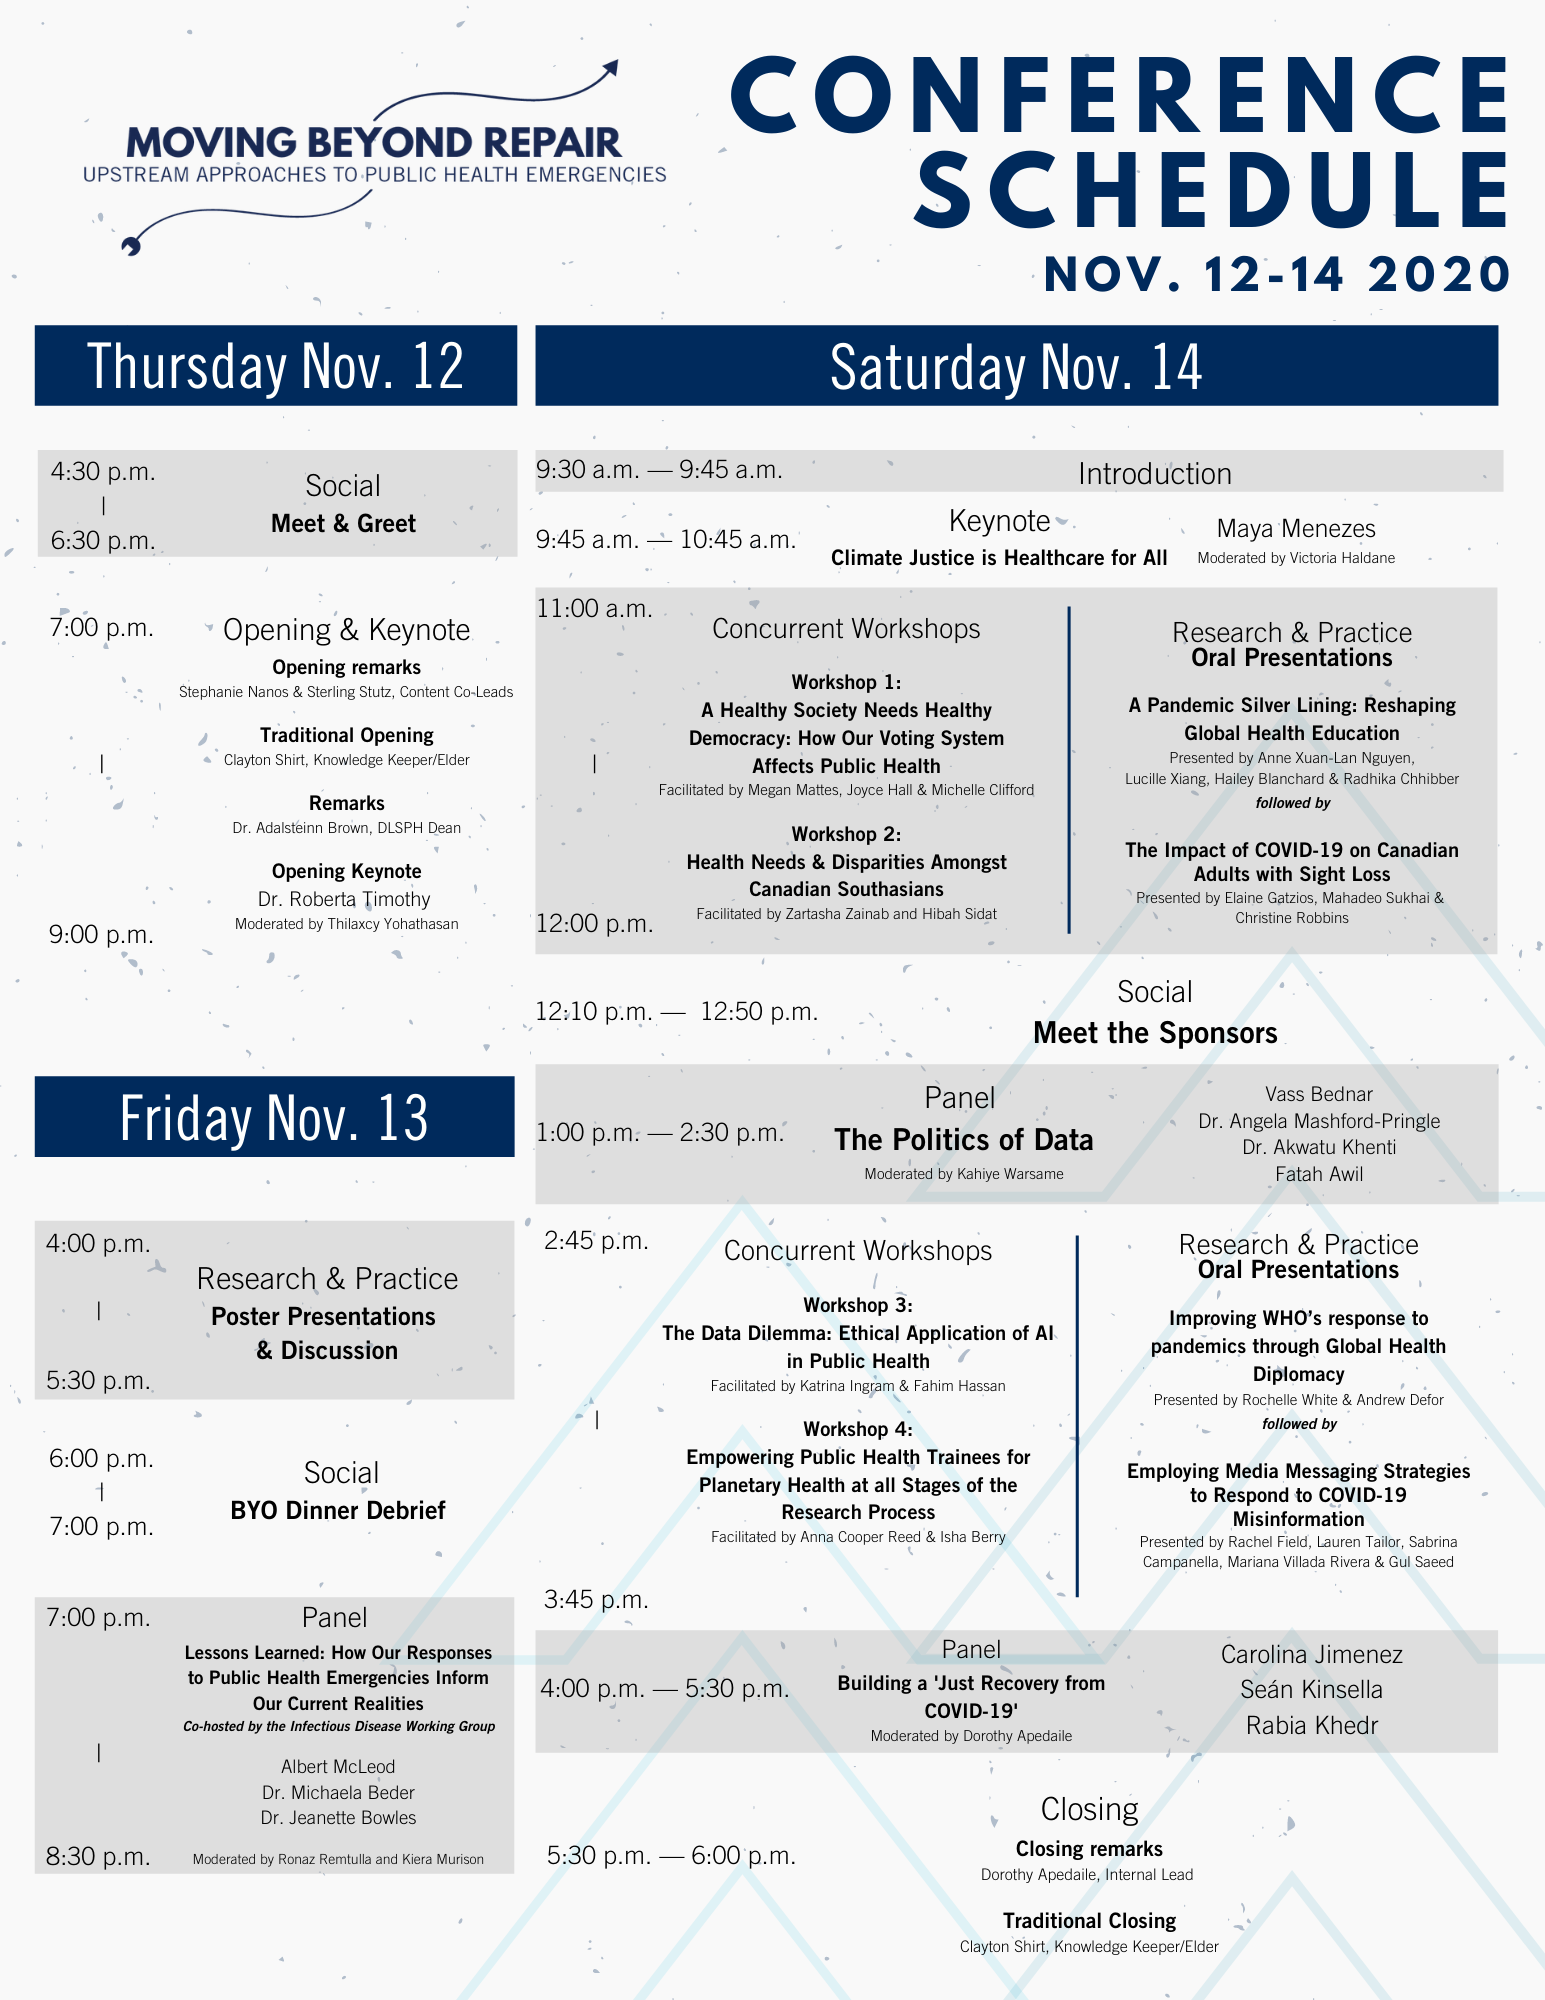 Image of the 2020 Student-Led Conference schedule